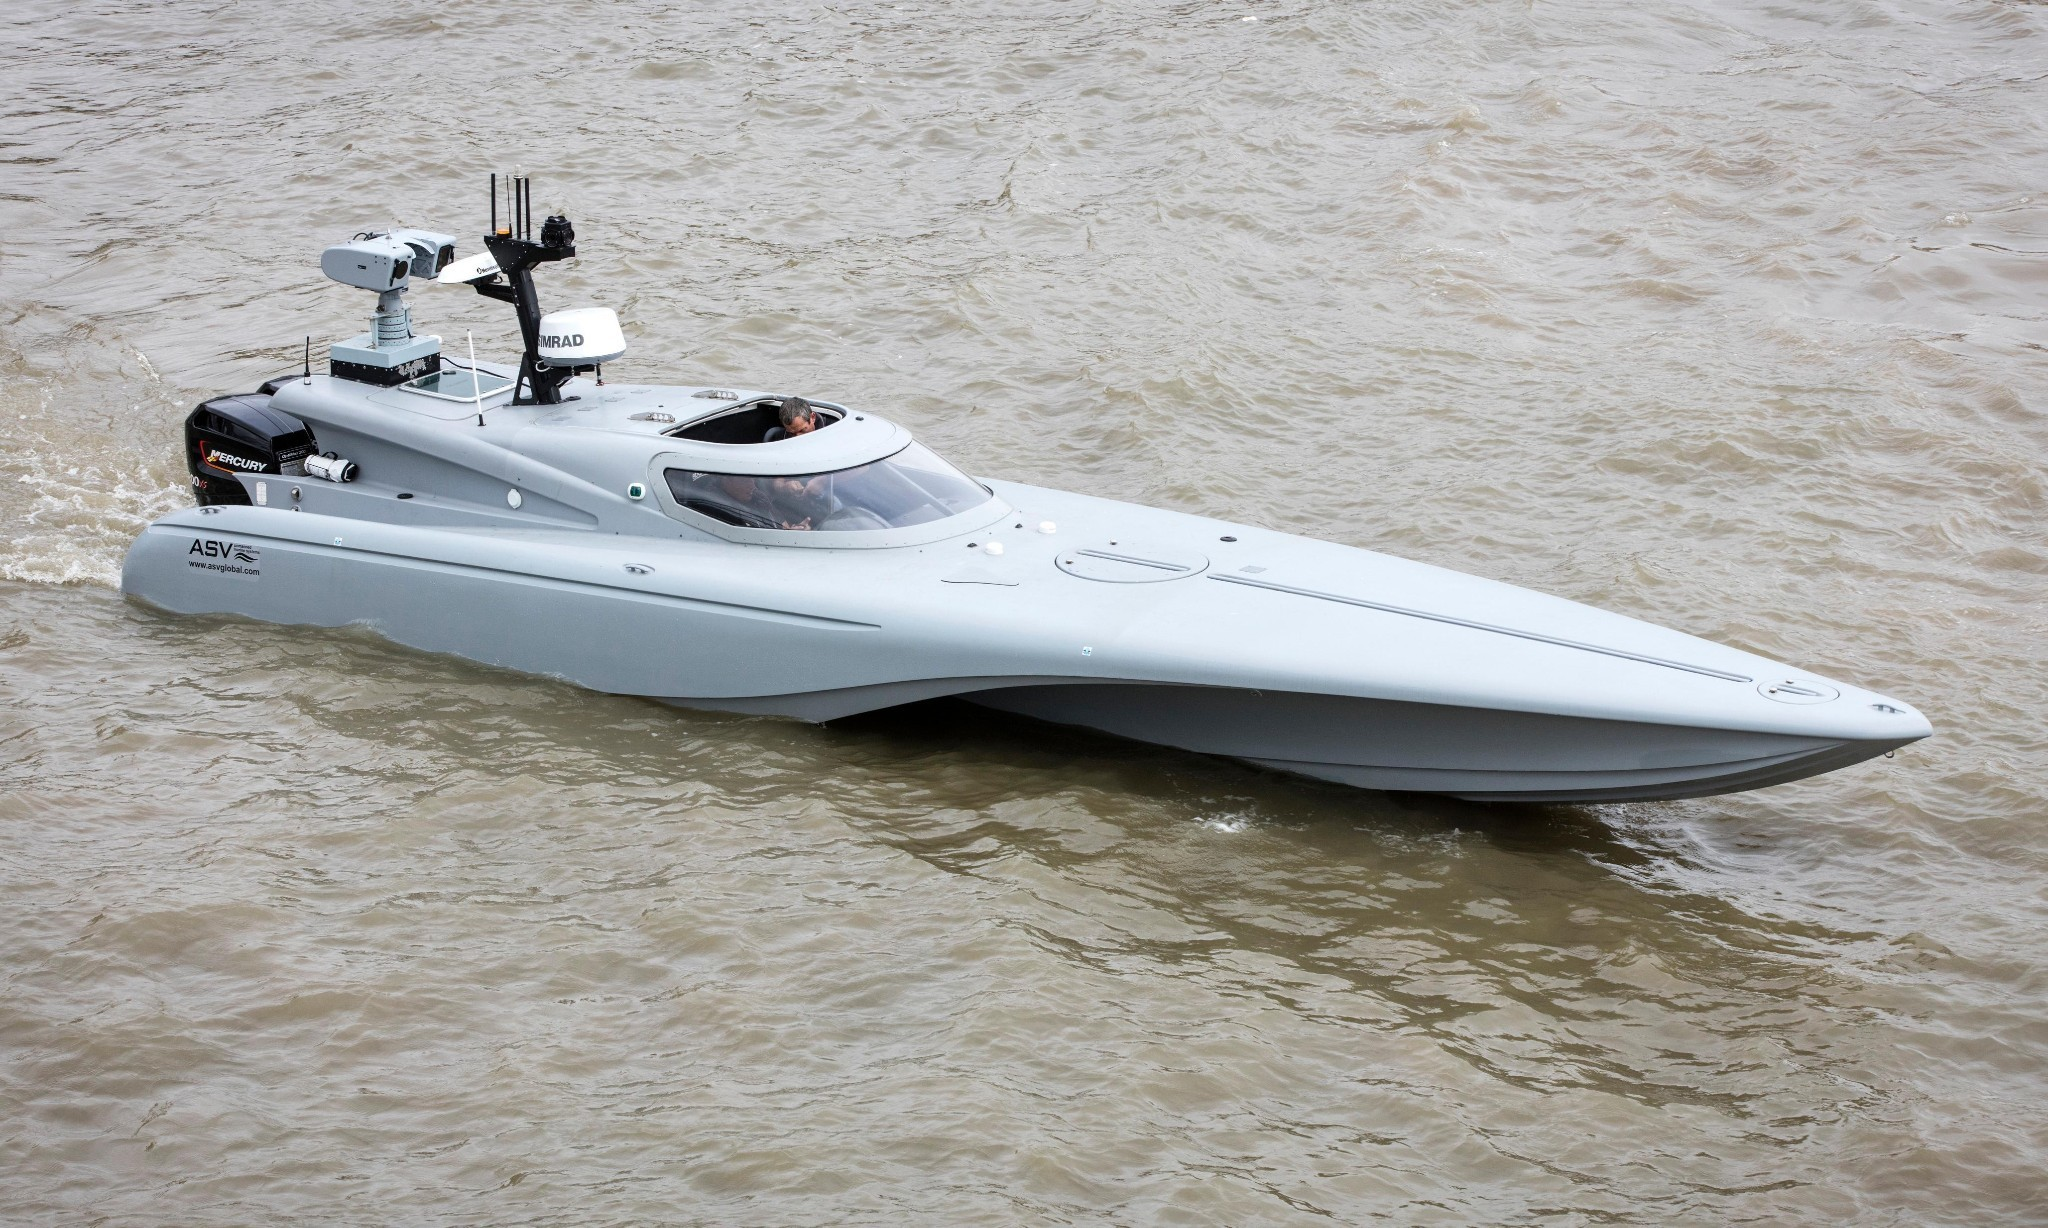 Royal Navy tests unmanned speedboat ahead of drone exercises